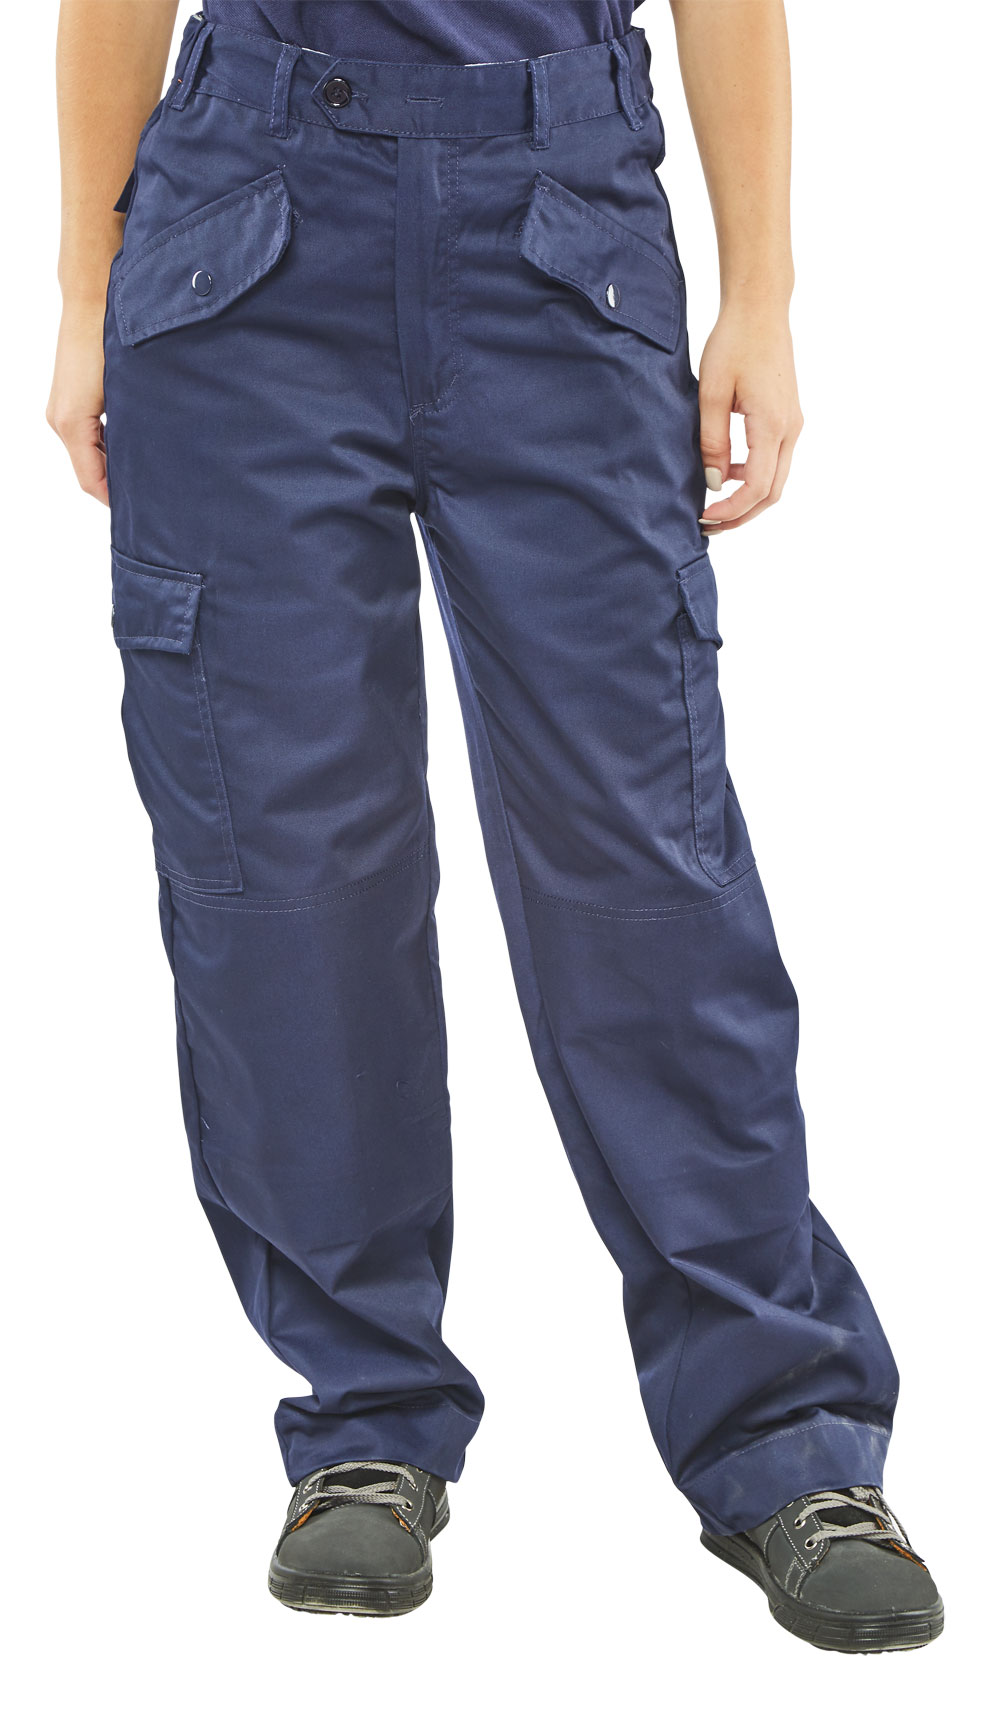 LADIES POLYCOTTON TROUSERS